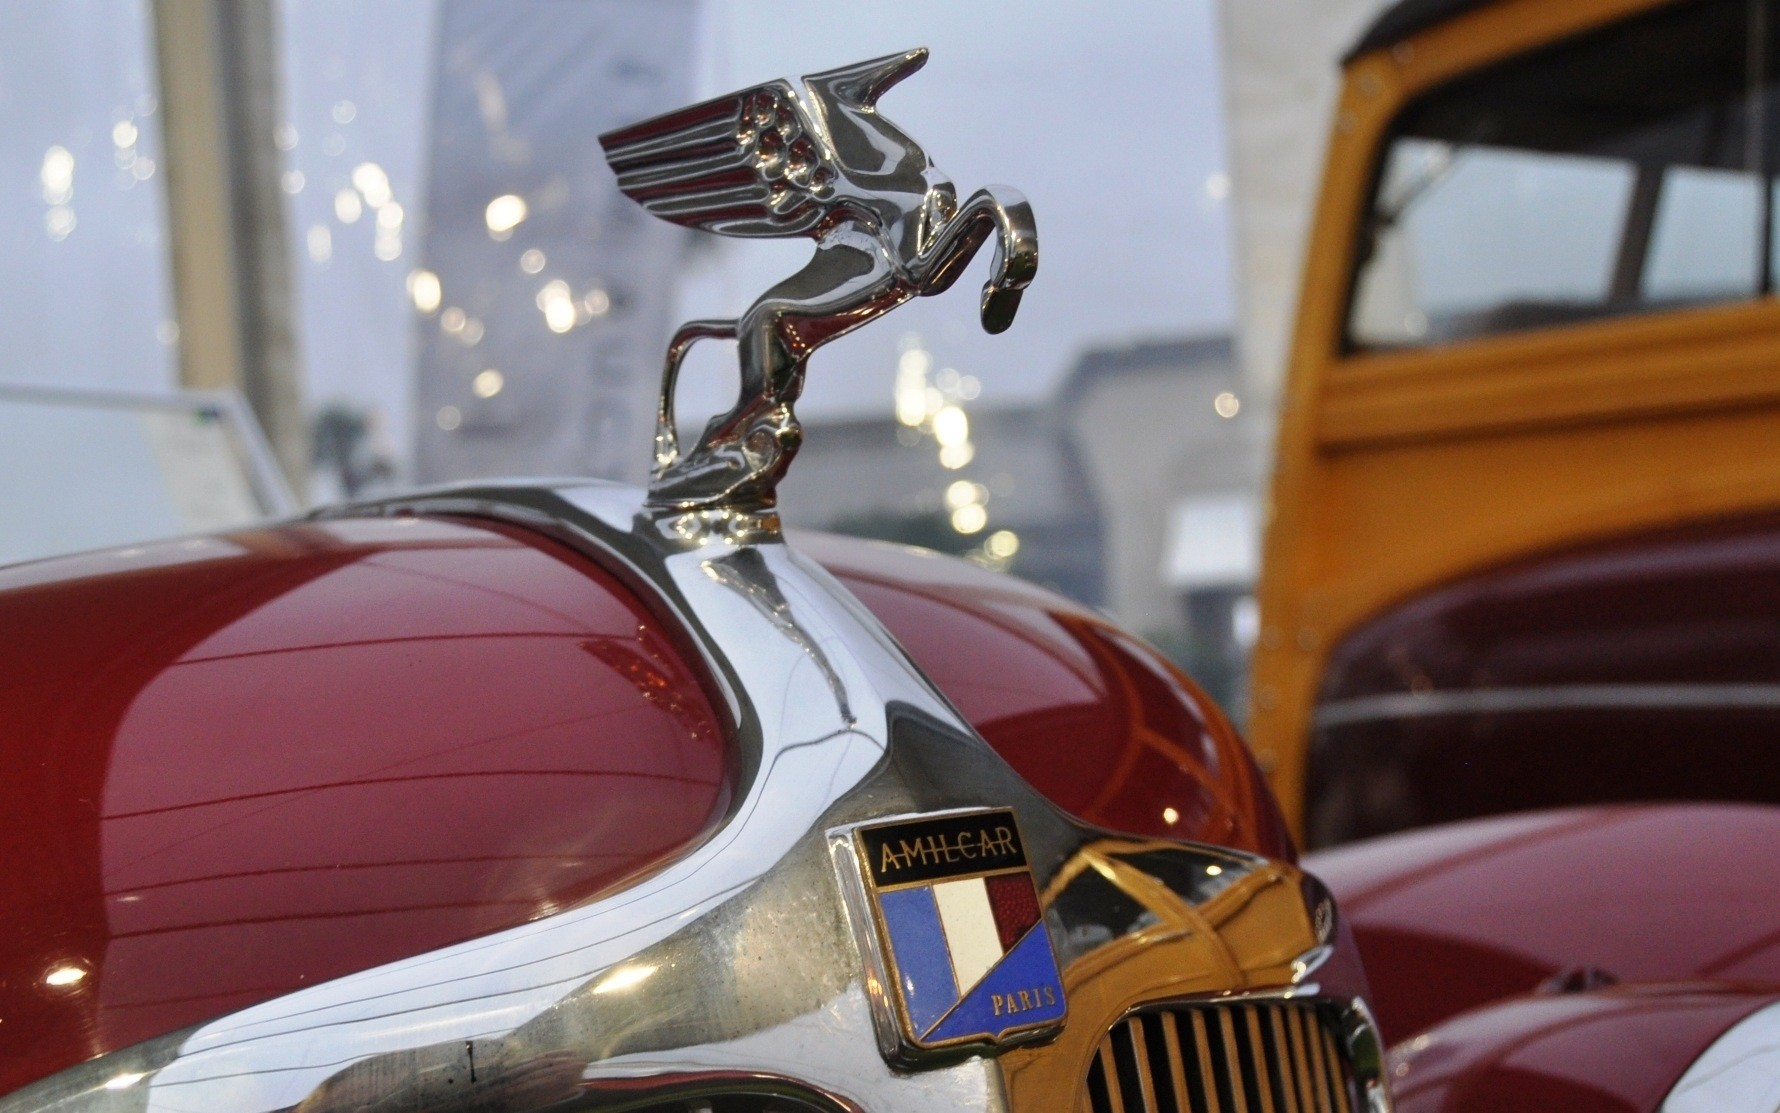 Coolest Vintage Hood Ornaments -- RM Auctions Amelia Island 2014 -- Pierce-Arrow, Cadillac, Stutz, Chrysler, Ford, Aston-Martin, Bentley and More 12